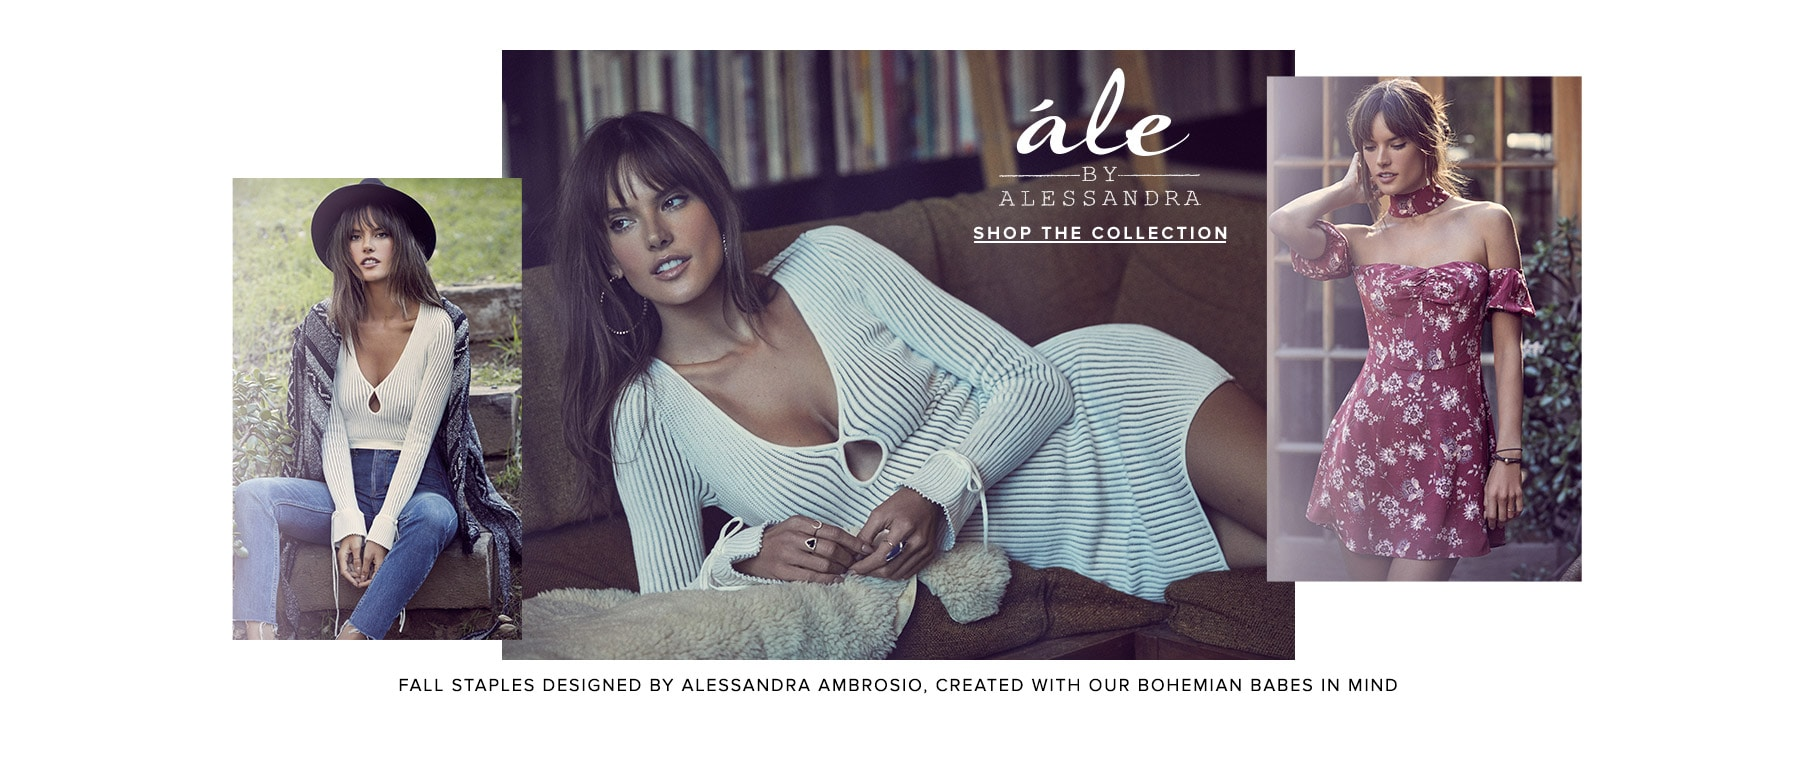 Fall staples designed by Alessandra Ambrosio, created with out bohemian babes in mind.